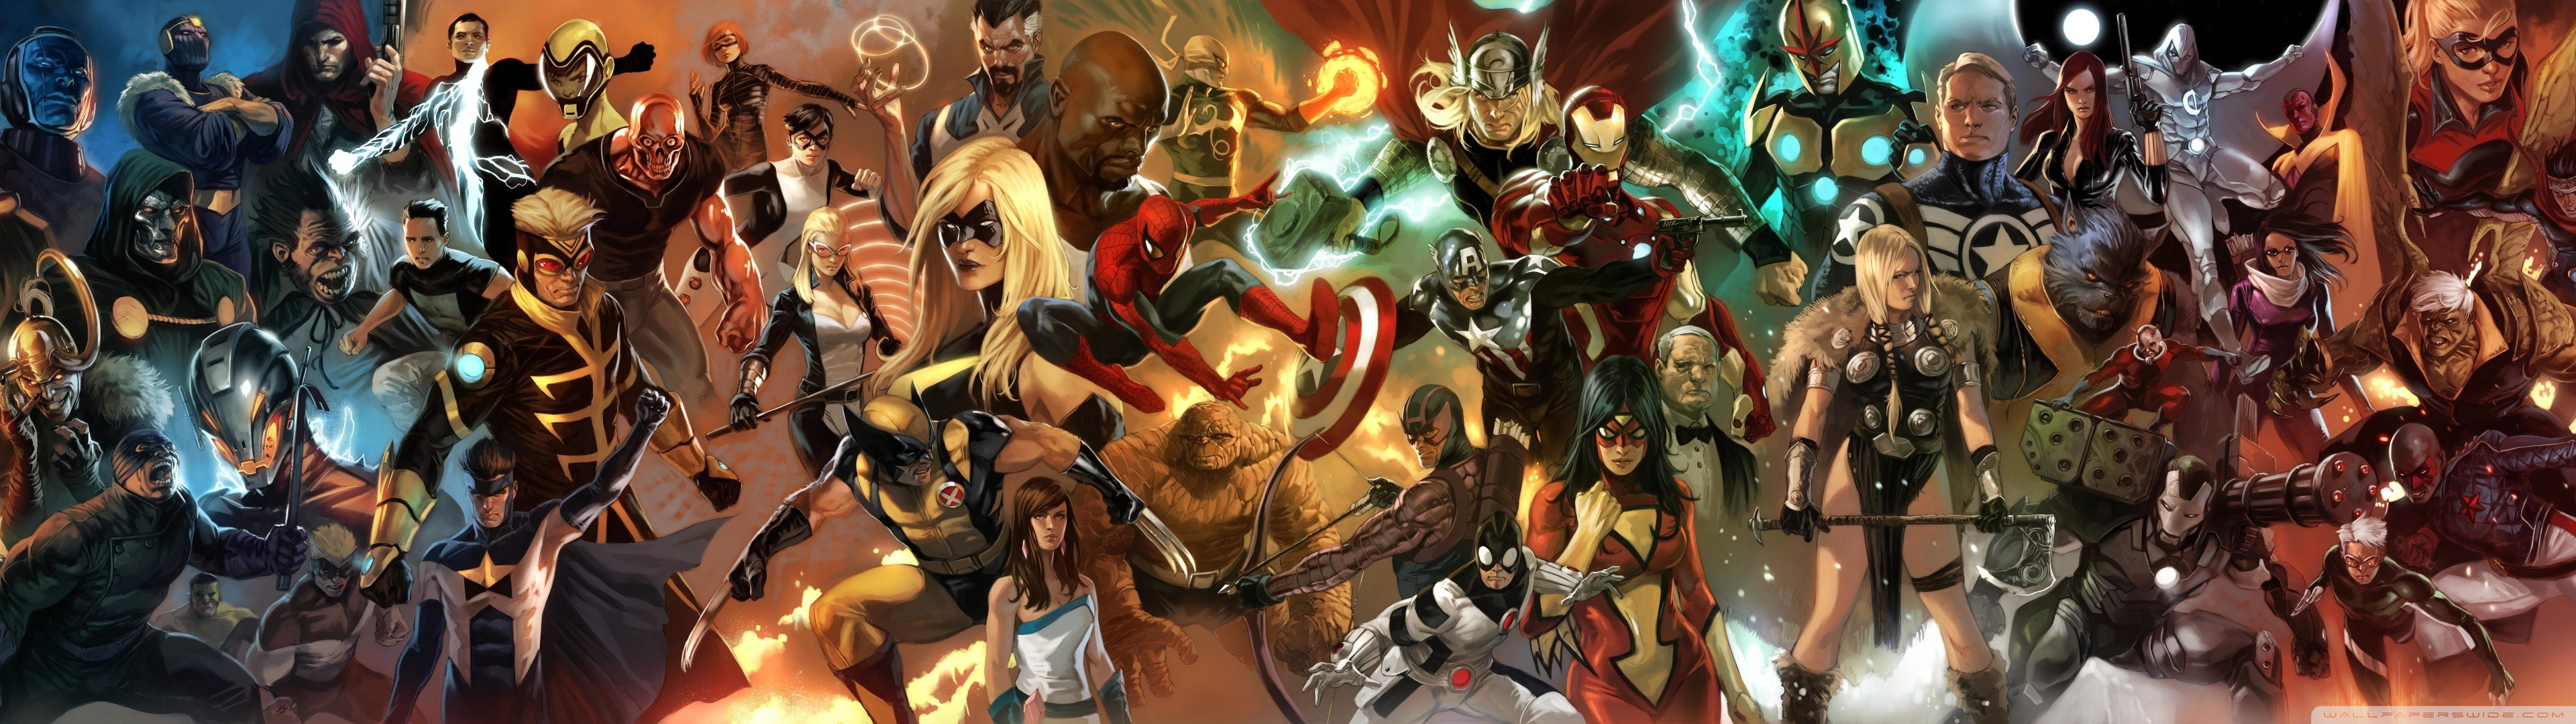 Download Wallpaper Marvel Dual Monitor - 429465  Trends_707989.jpg